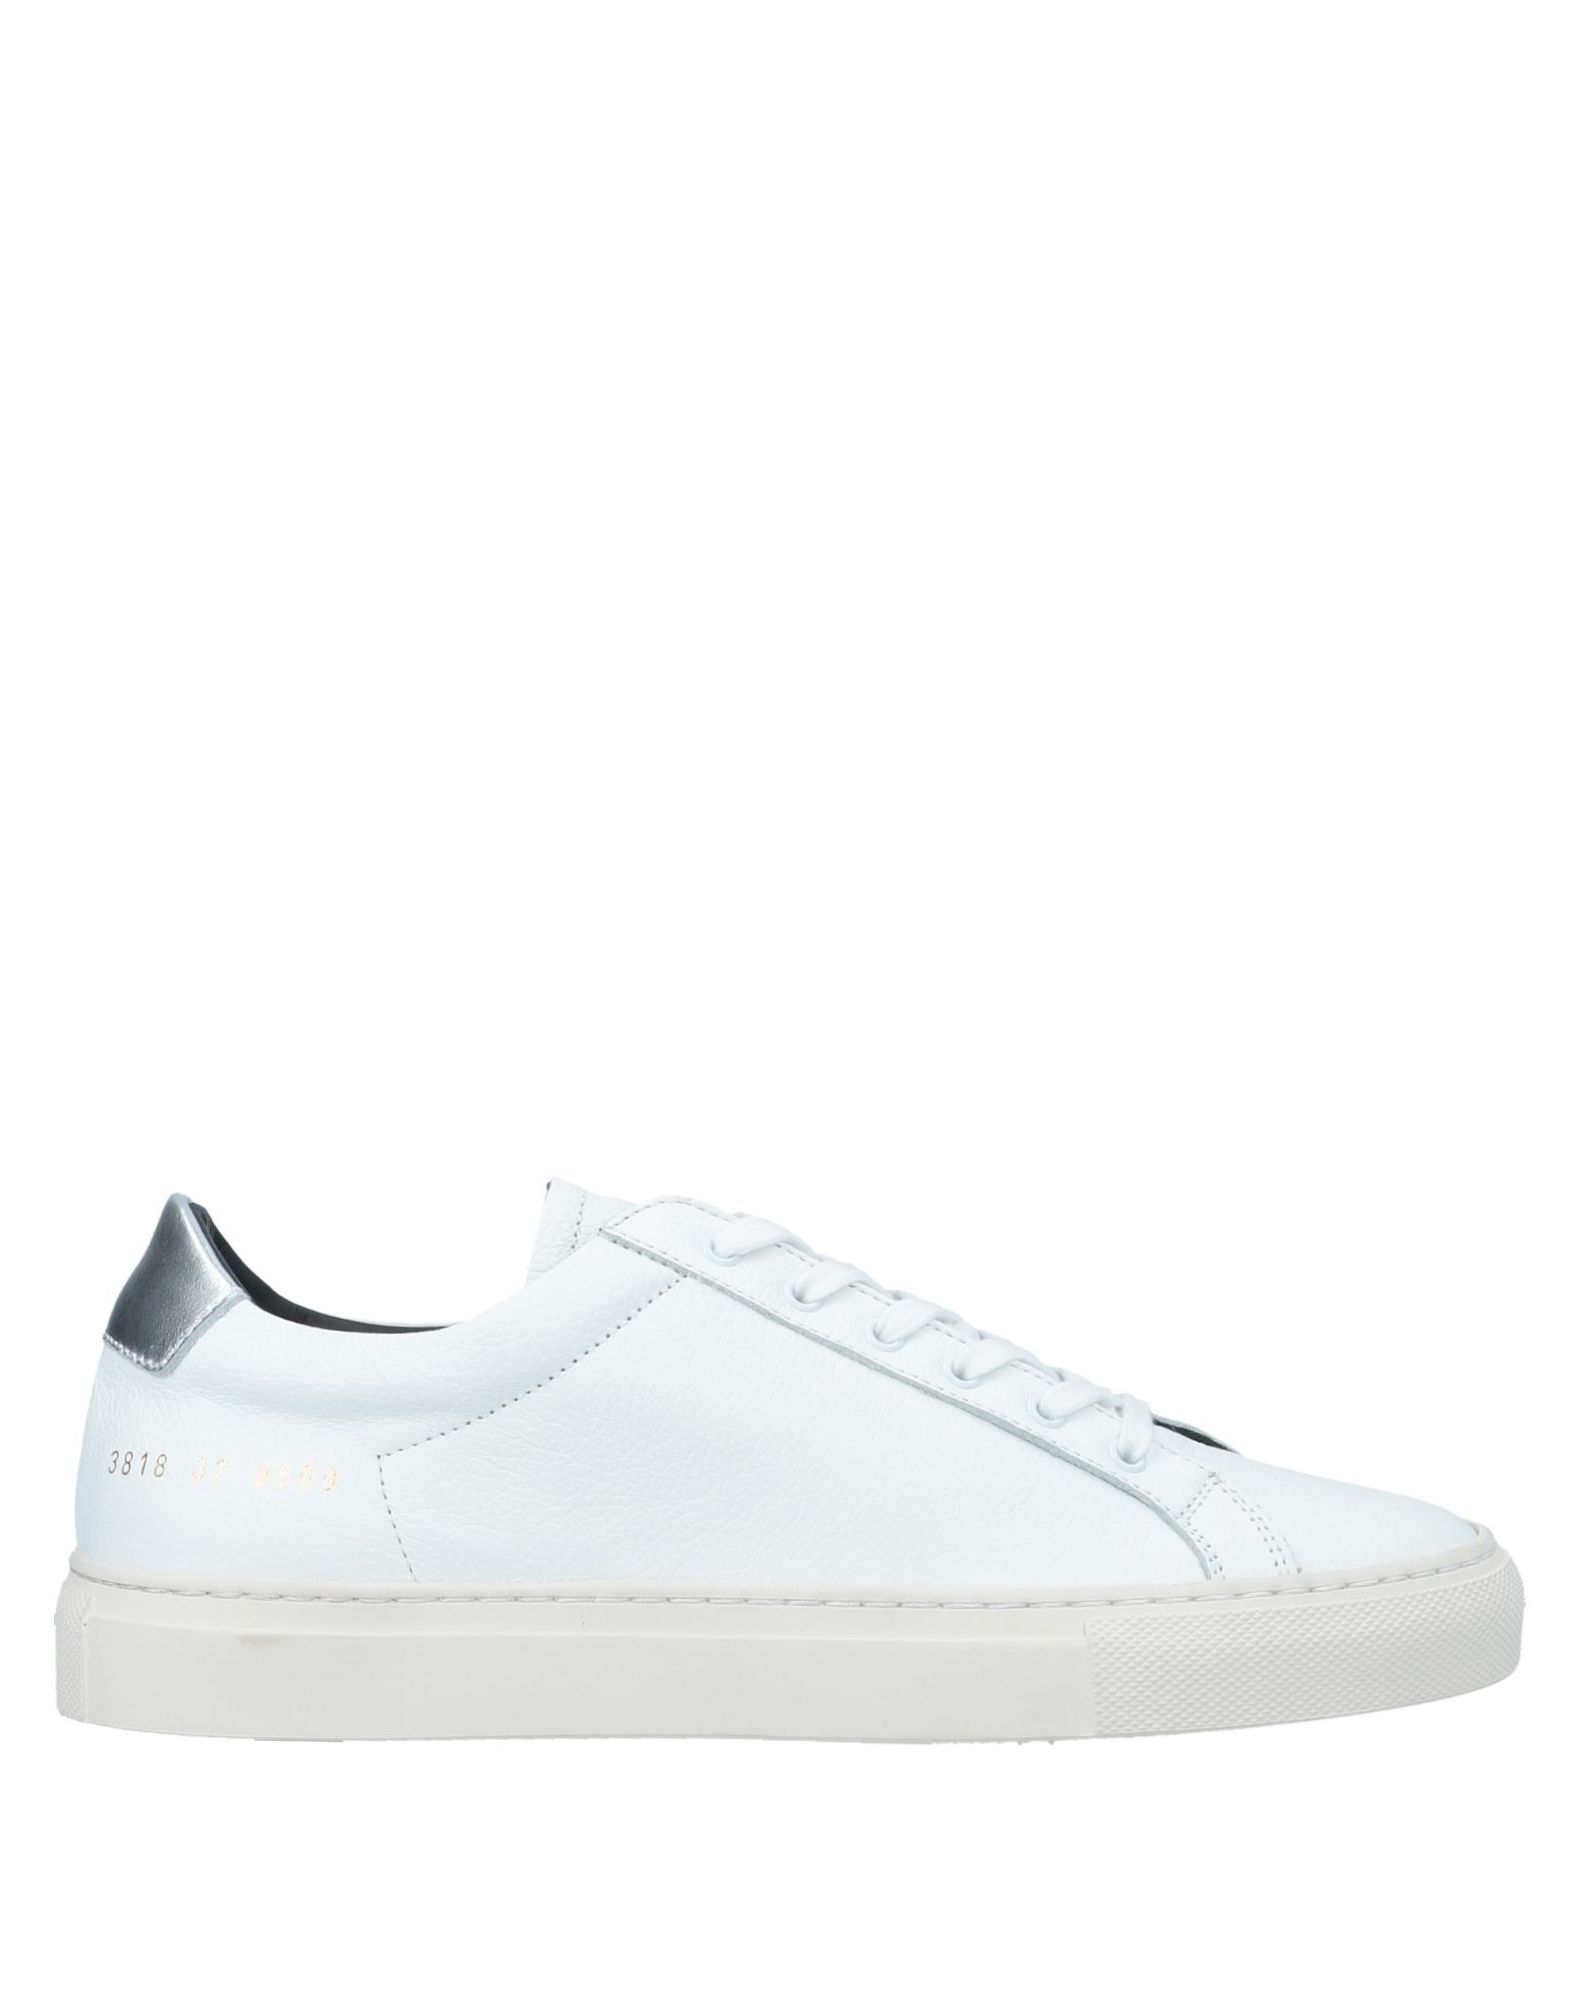 WOMAN by COMMON PROJECTS Низкие кеды и кроссовки woman by common projects низкие кеды и кроссовки